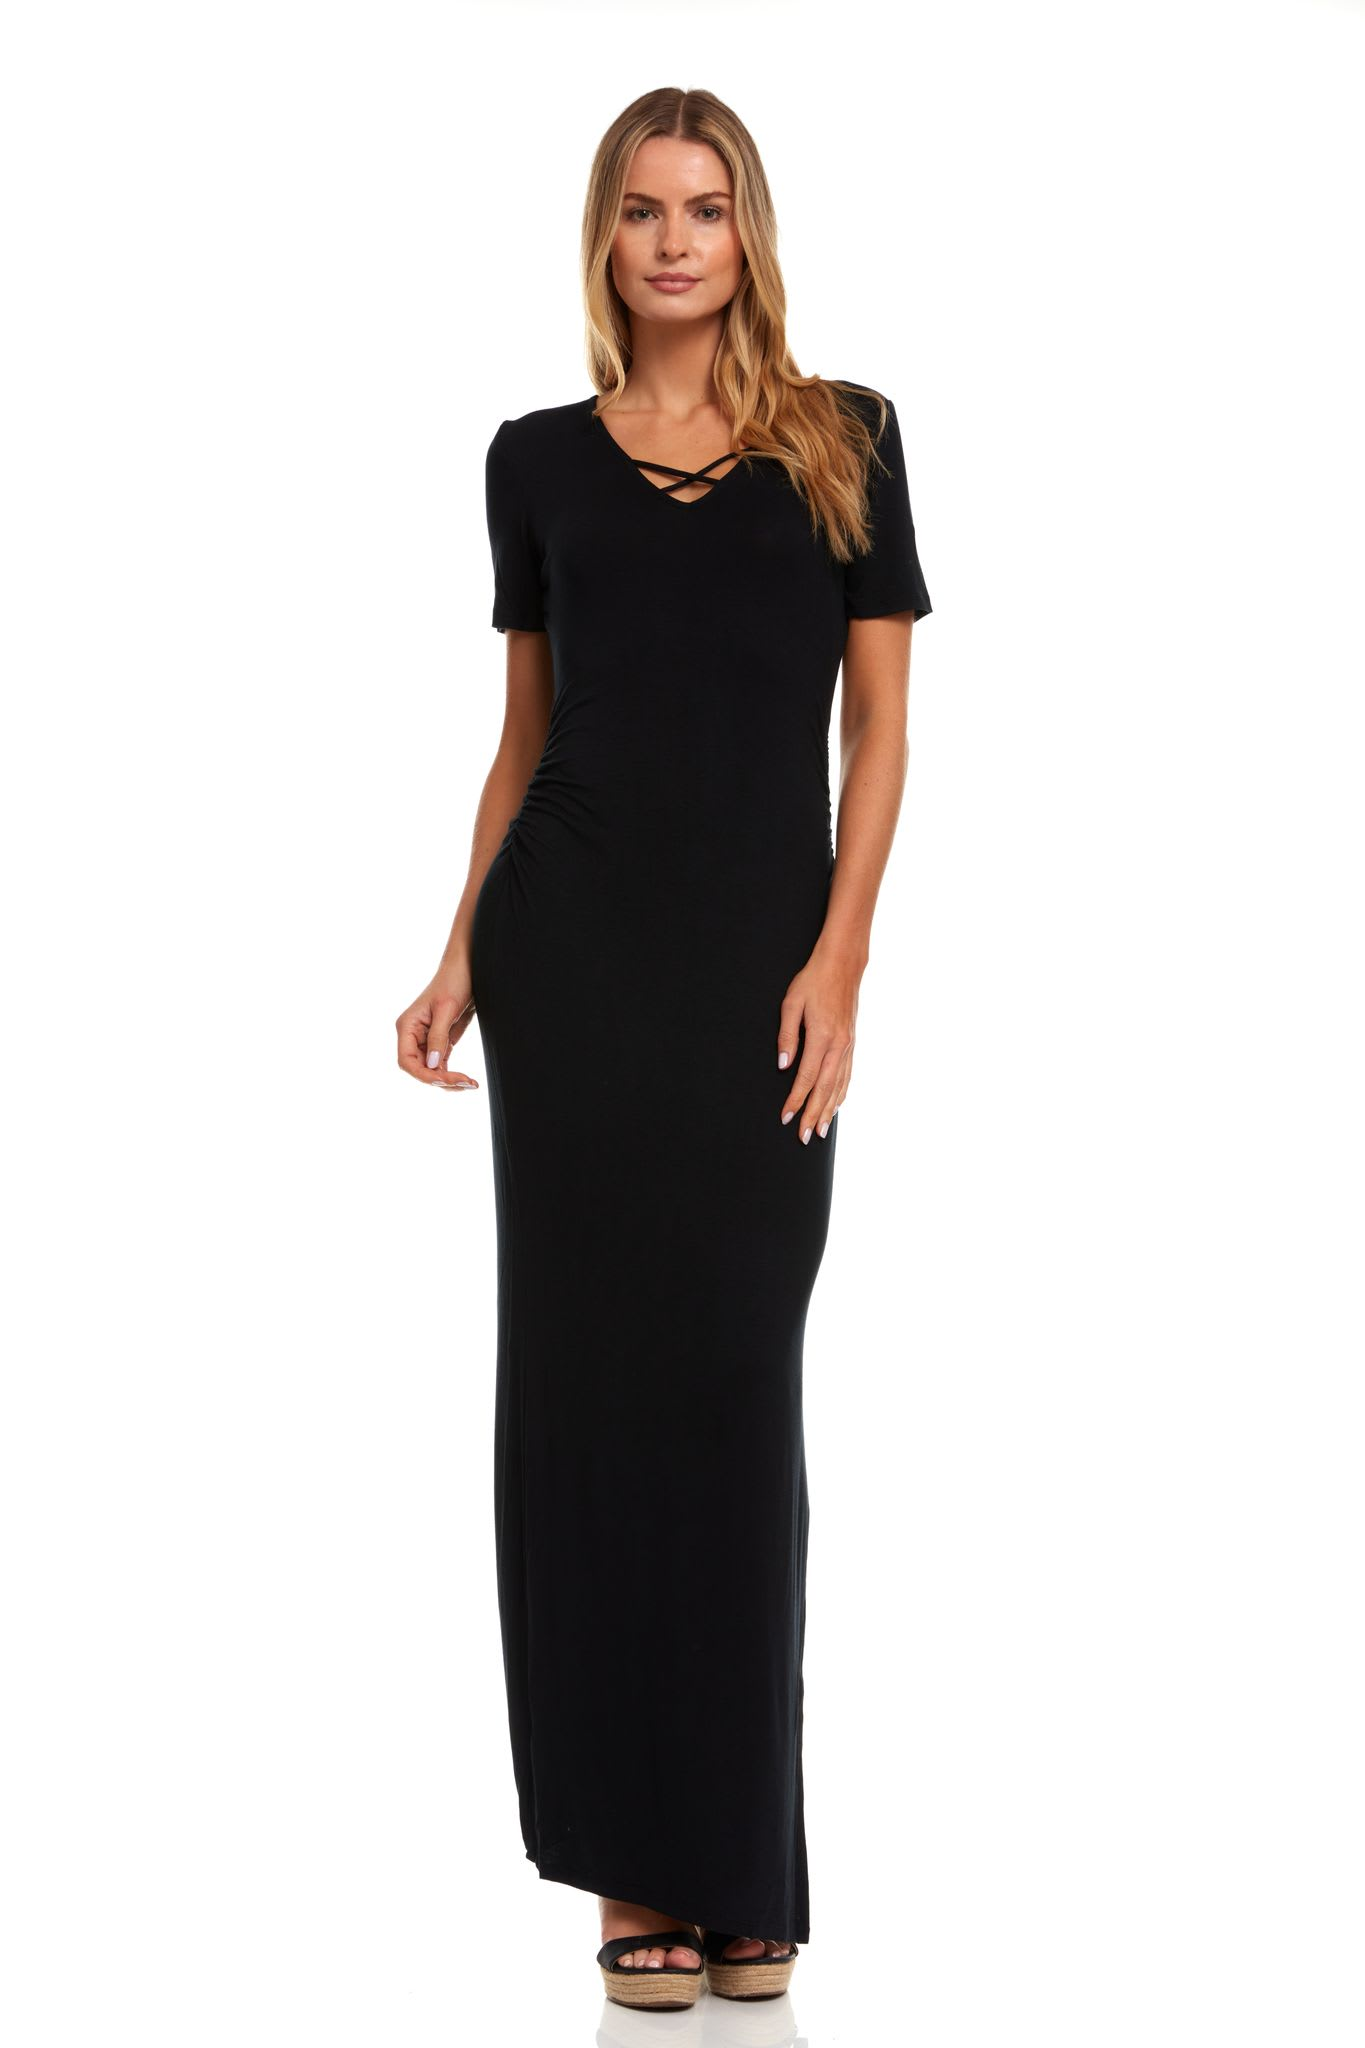 Rouched Side Maxi Dress with Criss-Cross Detail - Black - Front